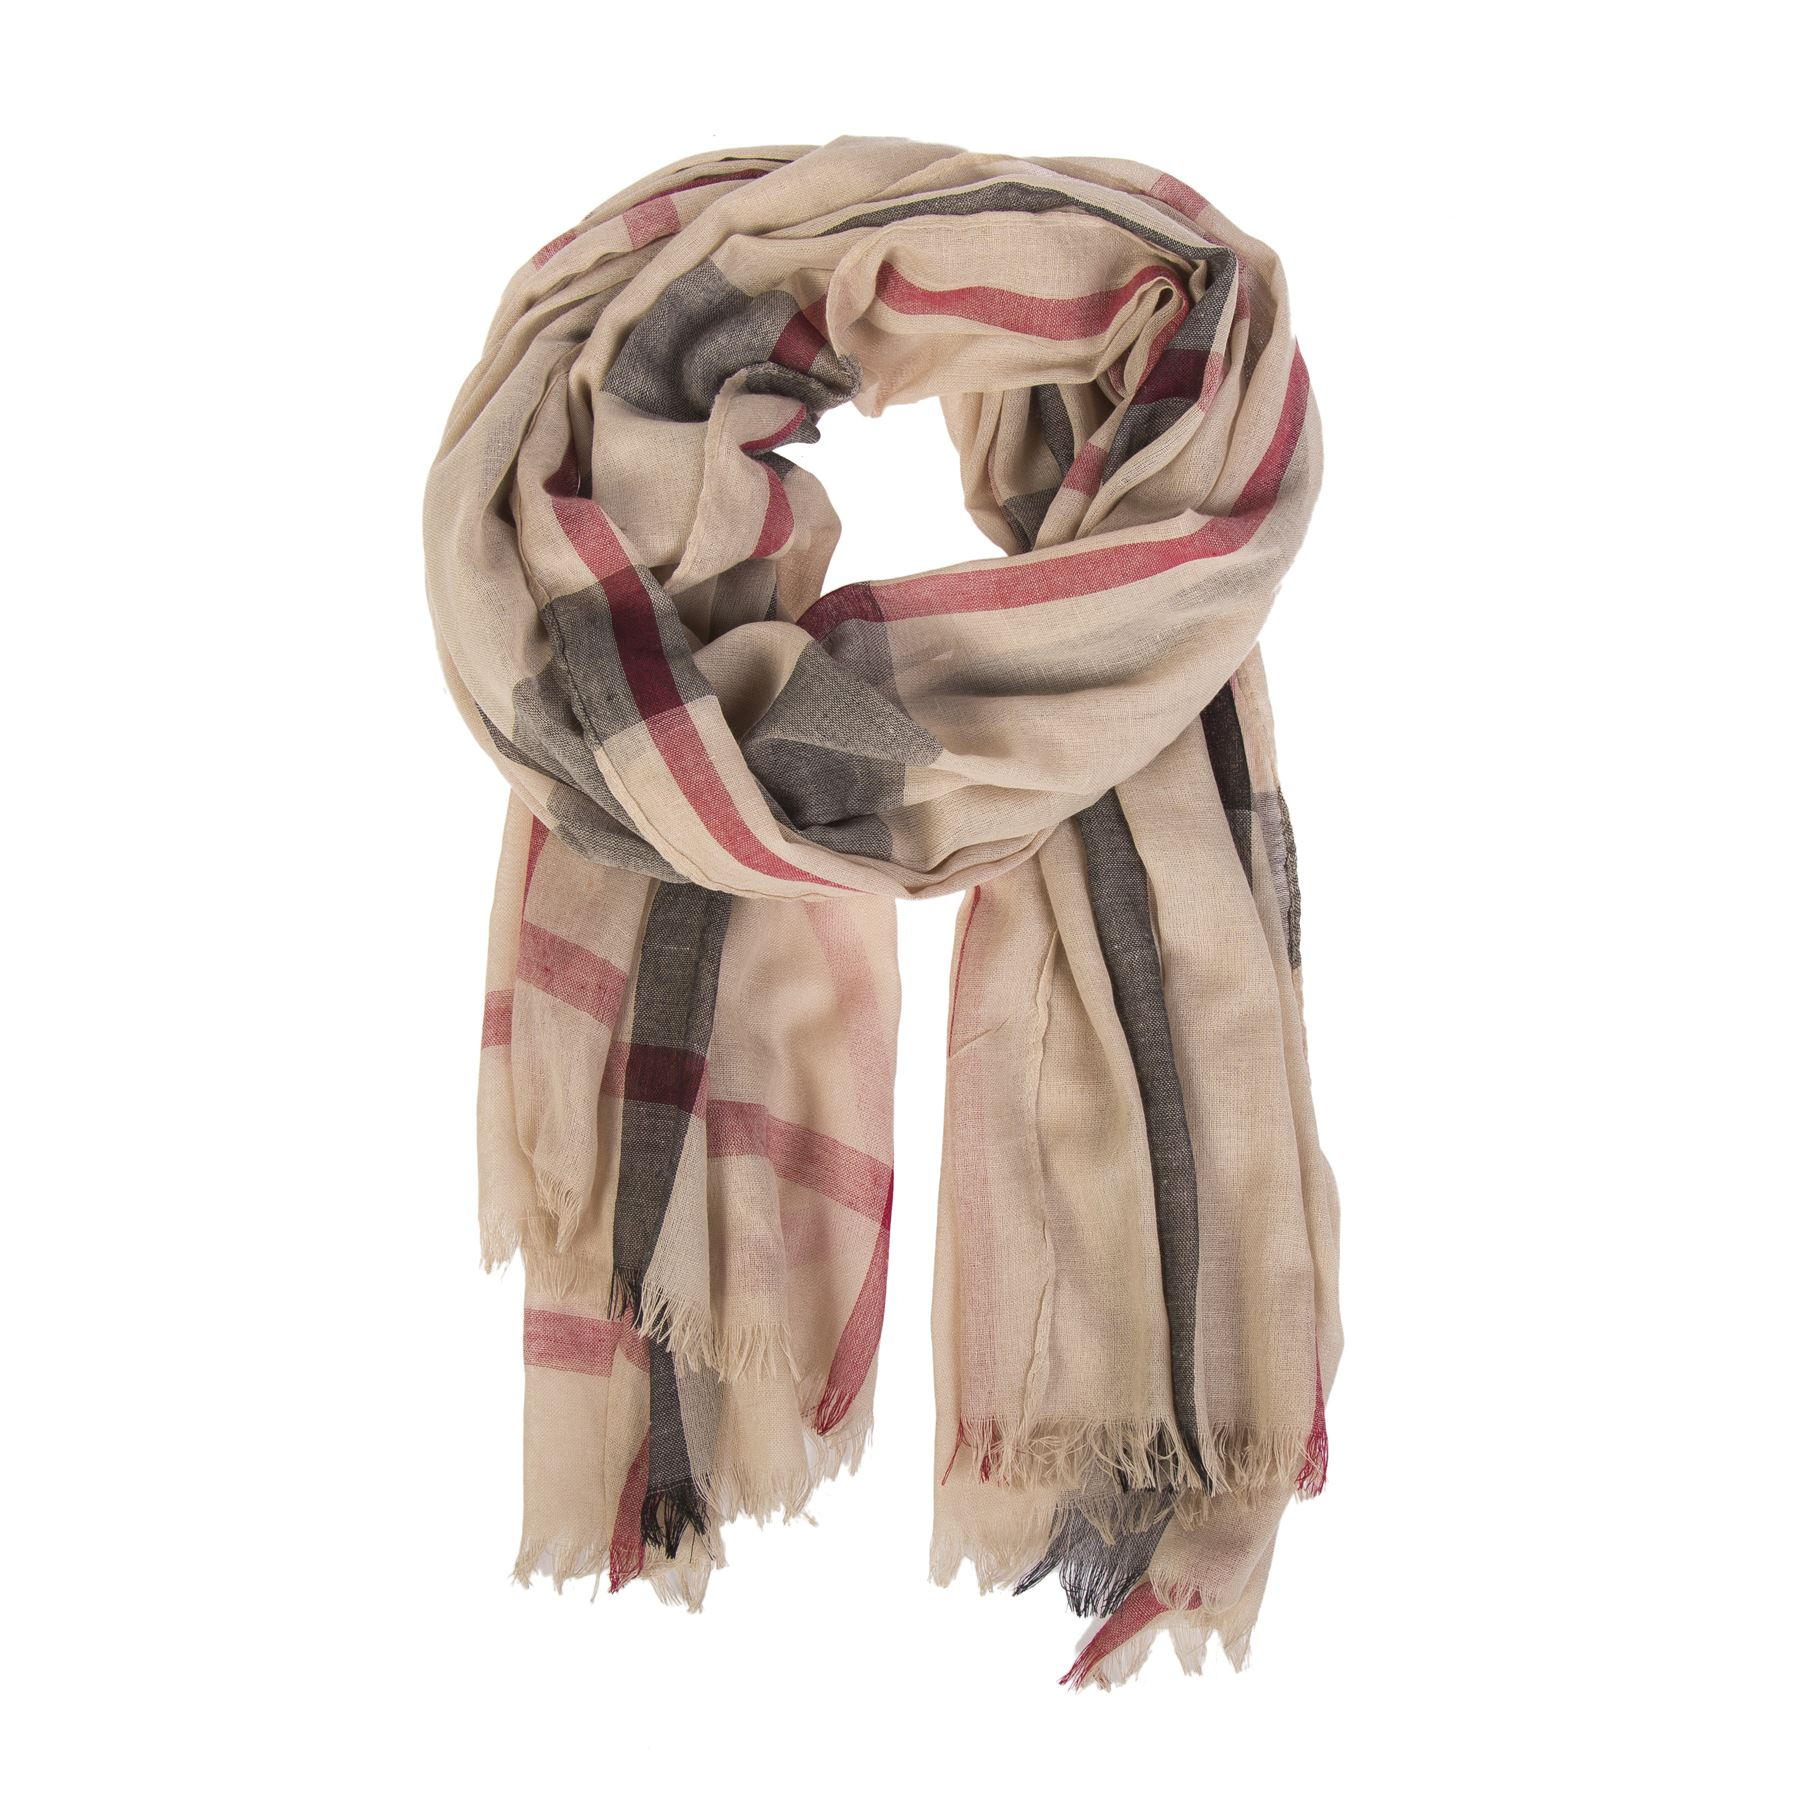 Find great deals on eBay for ladies red scarf. Shop with confidence.